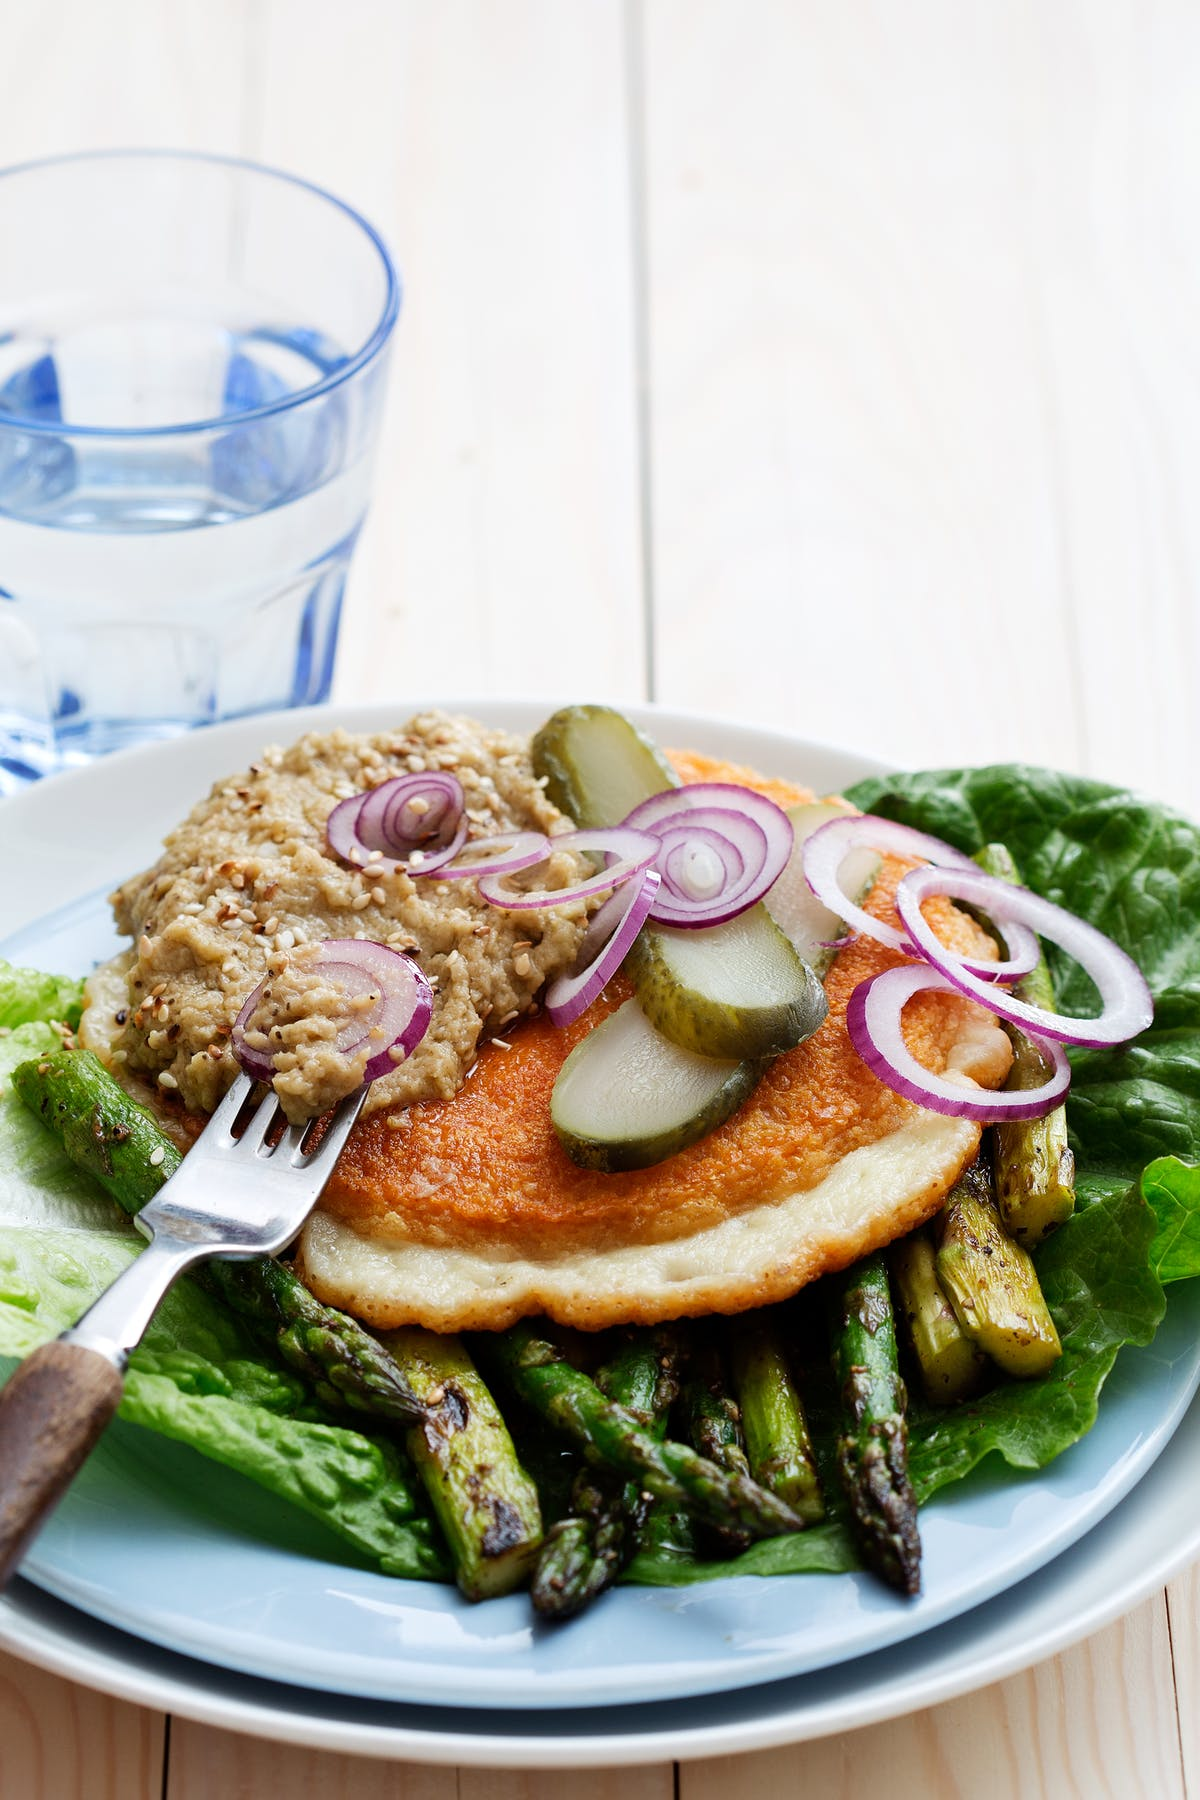 Hamburguesa de queso vegetariana y low carb